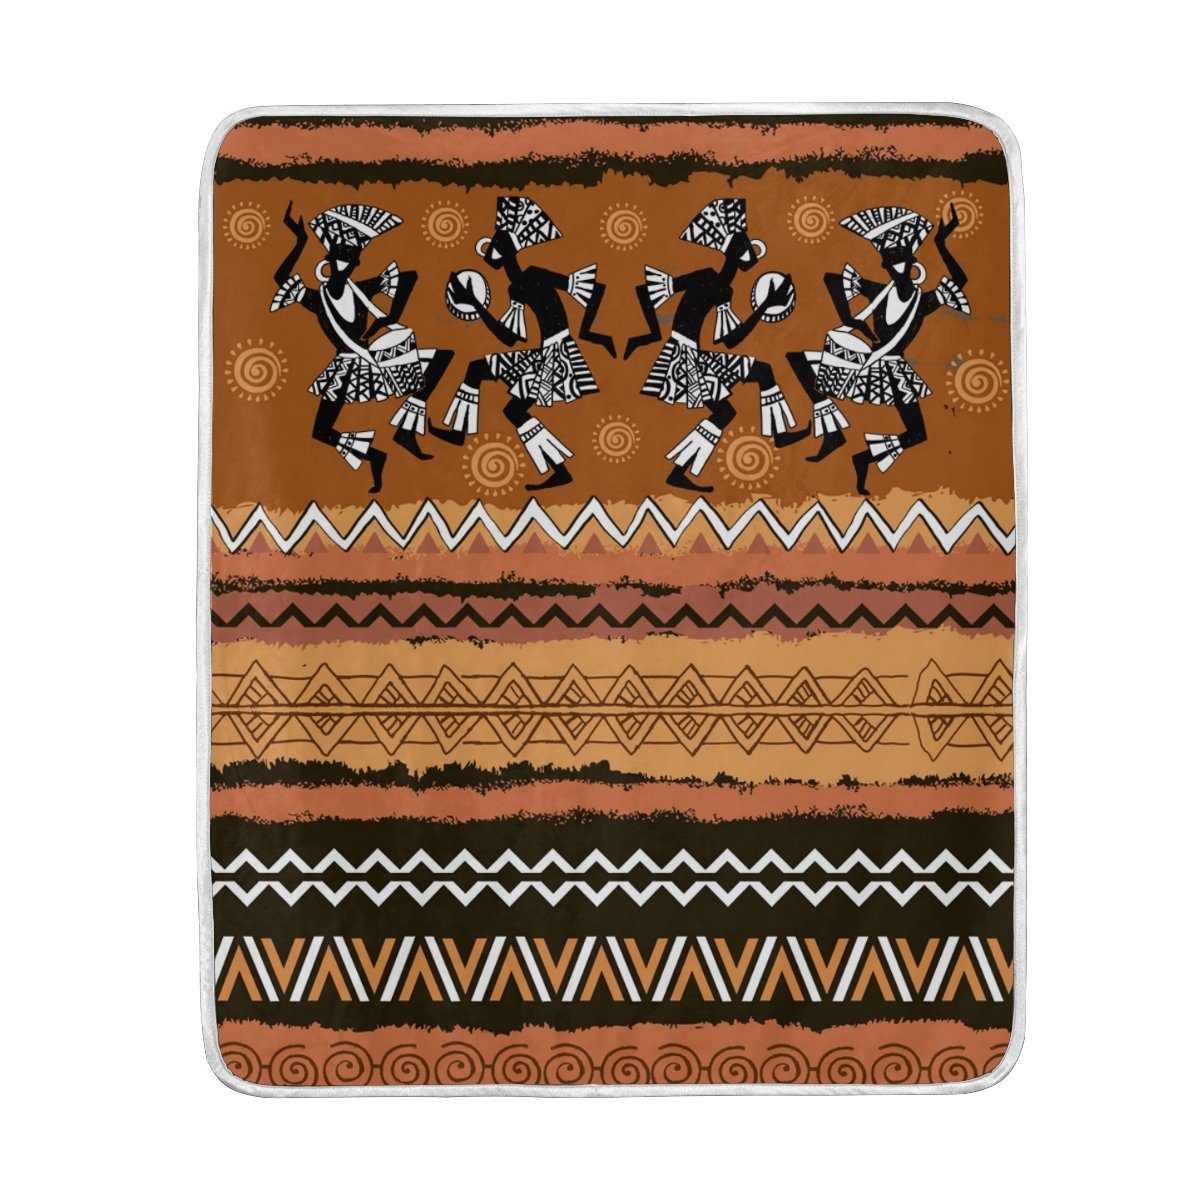 My Little Nest Ethnic Ornament Dancing Africans Soft Throw Blanket Lightweight MicrofiberCozy Warm Blankets Everyday Use for Bed Couch Sofa 50'' x 60''